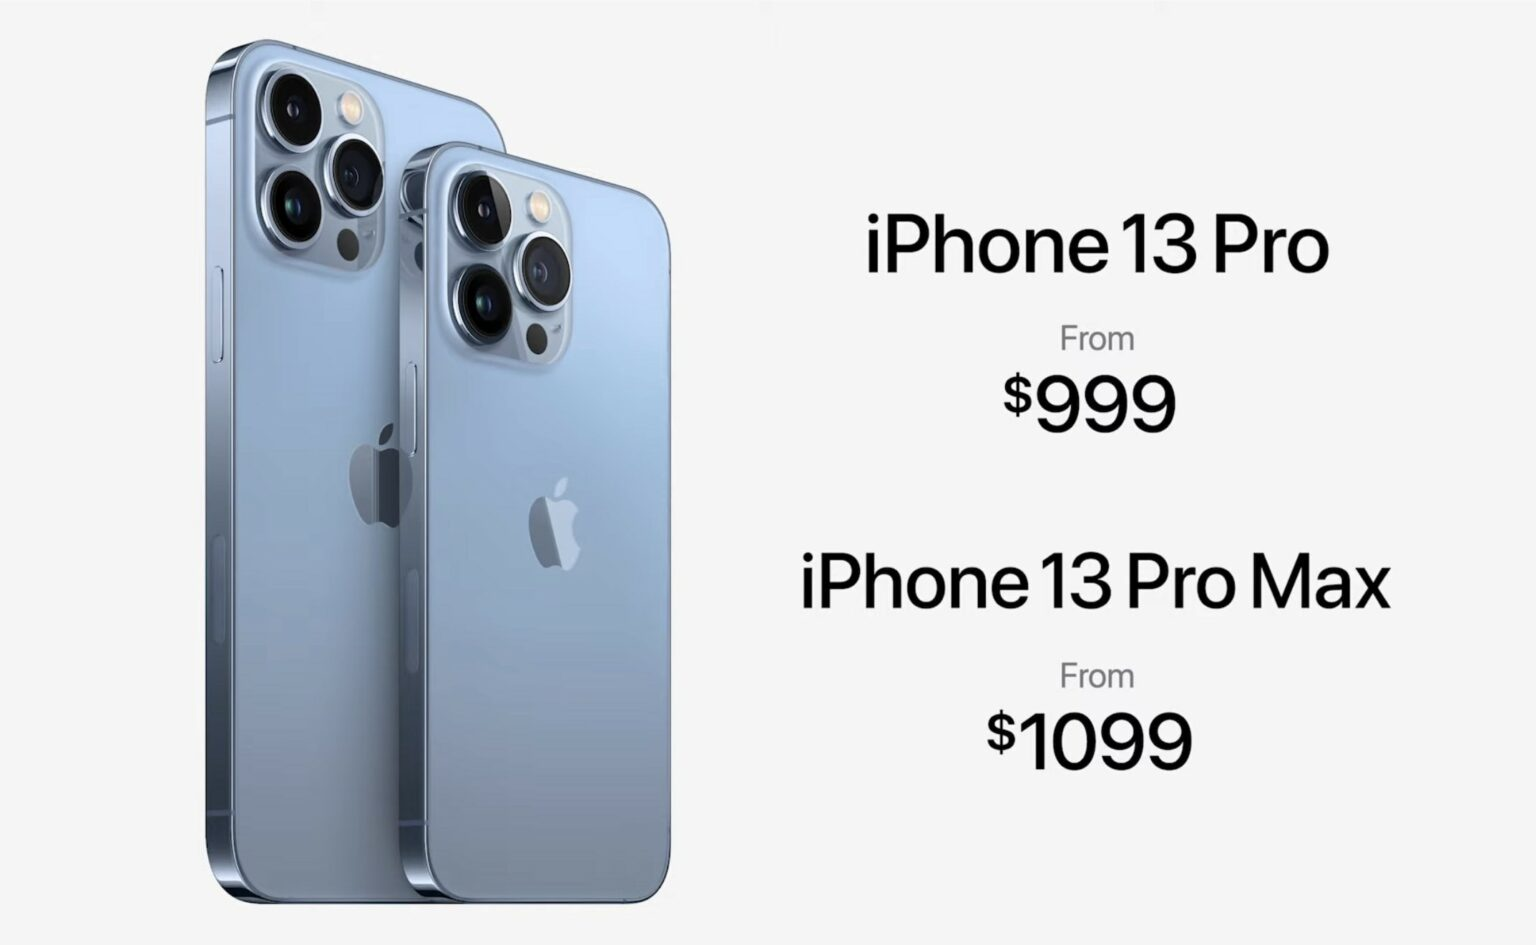 The iPhone 13 Pro Max is the big winner in our flash poll.